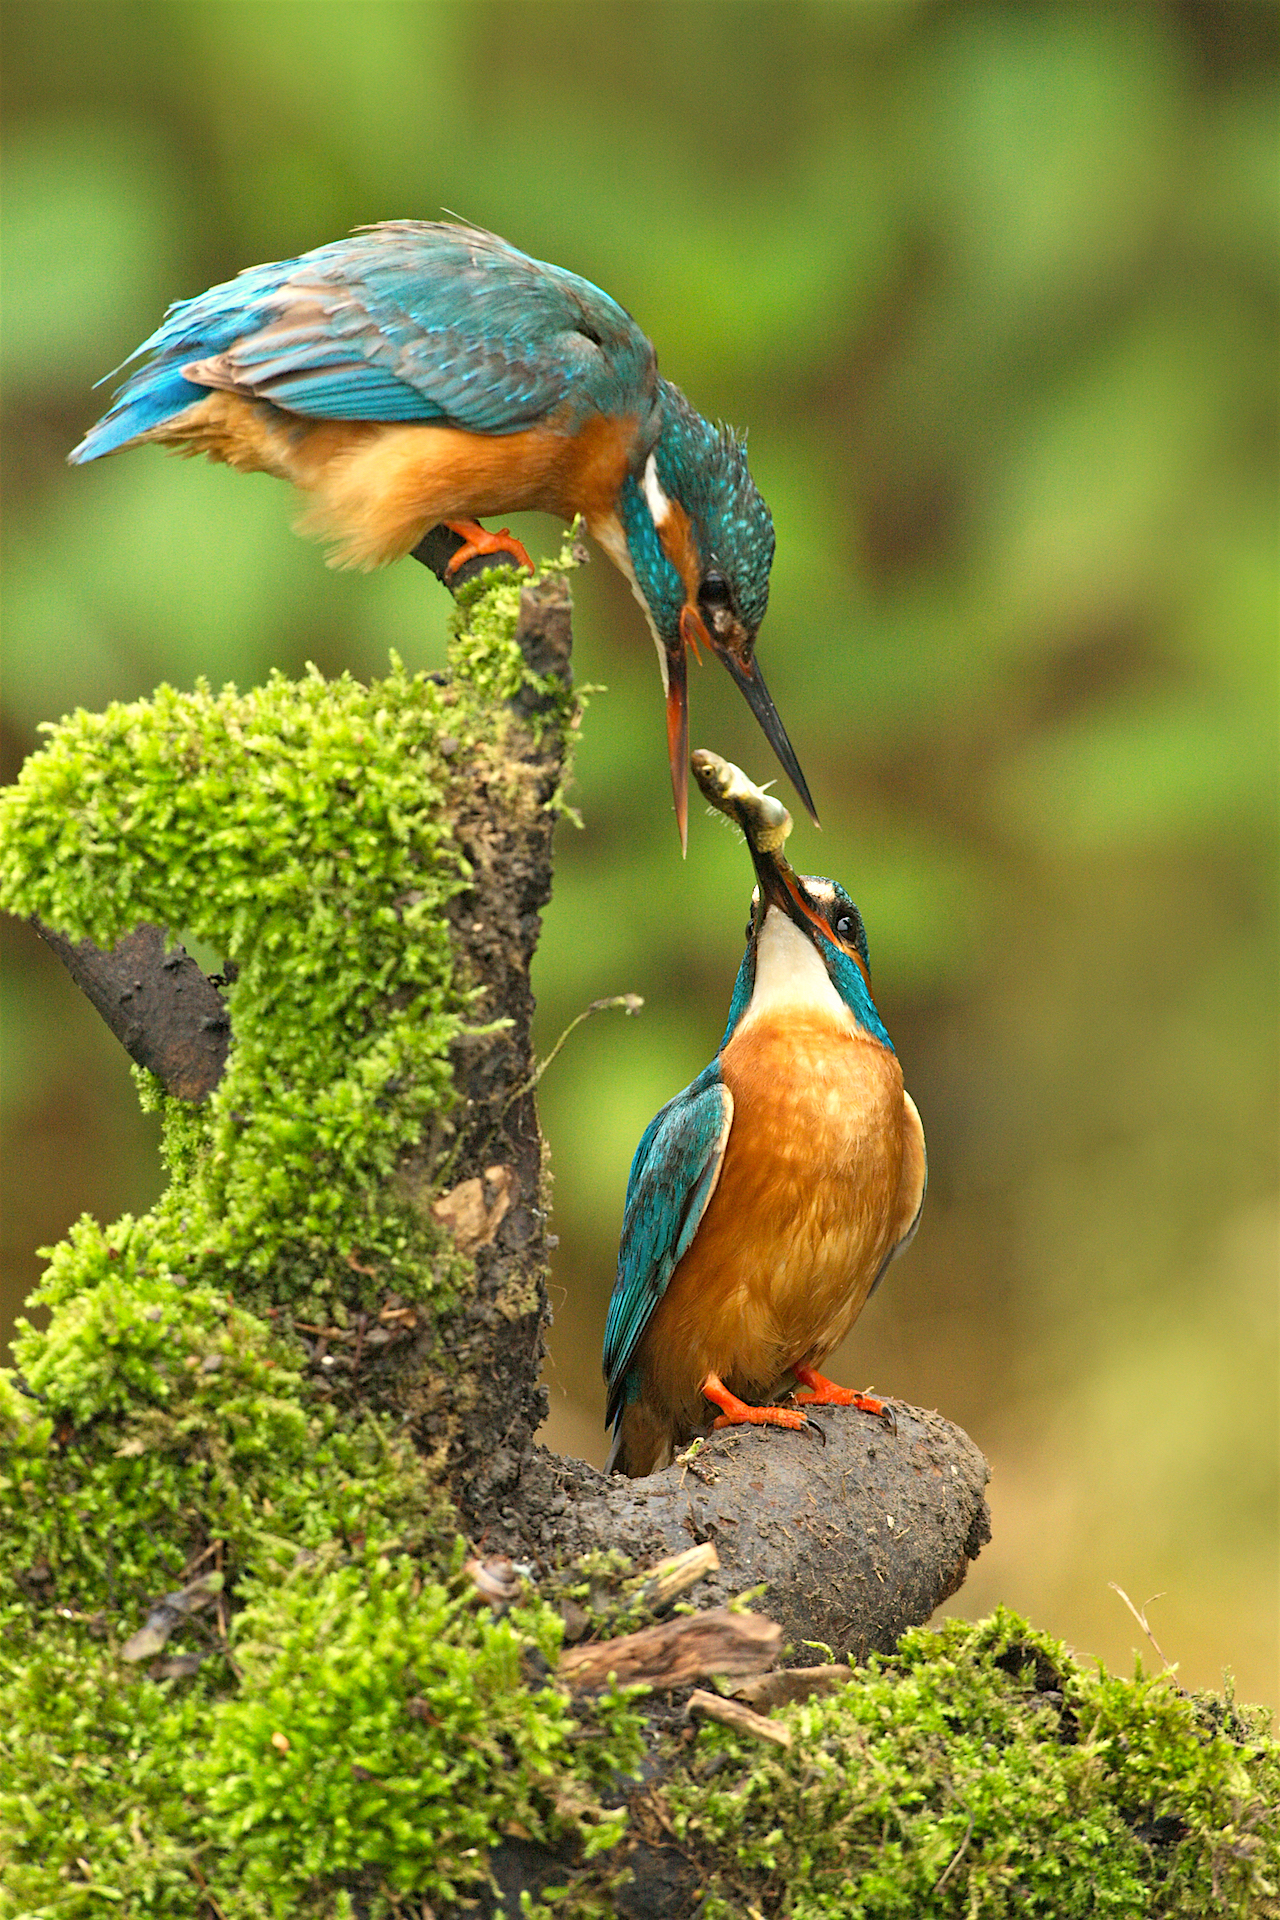 Kingfisher-Alcedo atthis on perch near nesting site in The netherlands